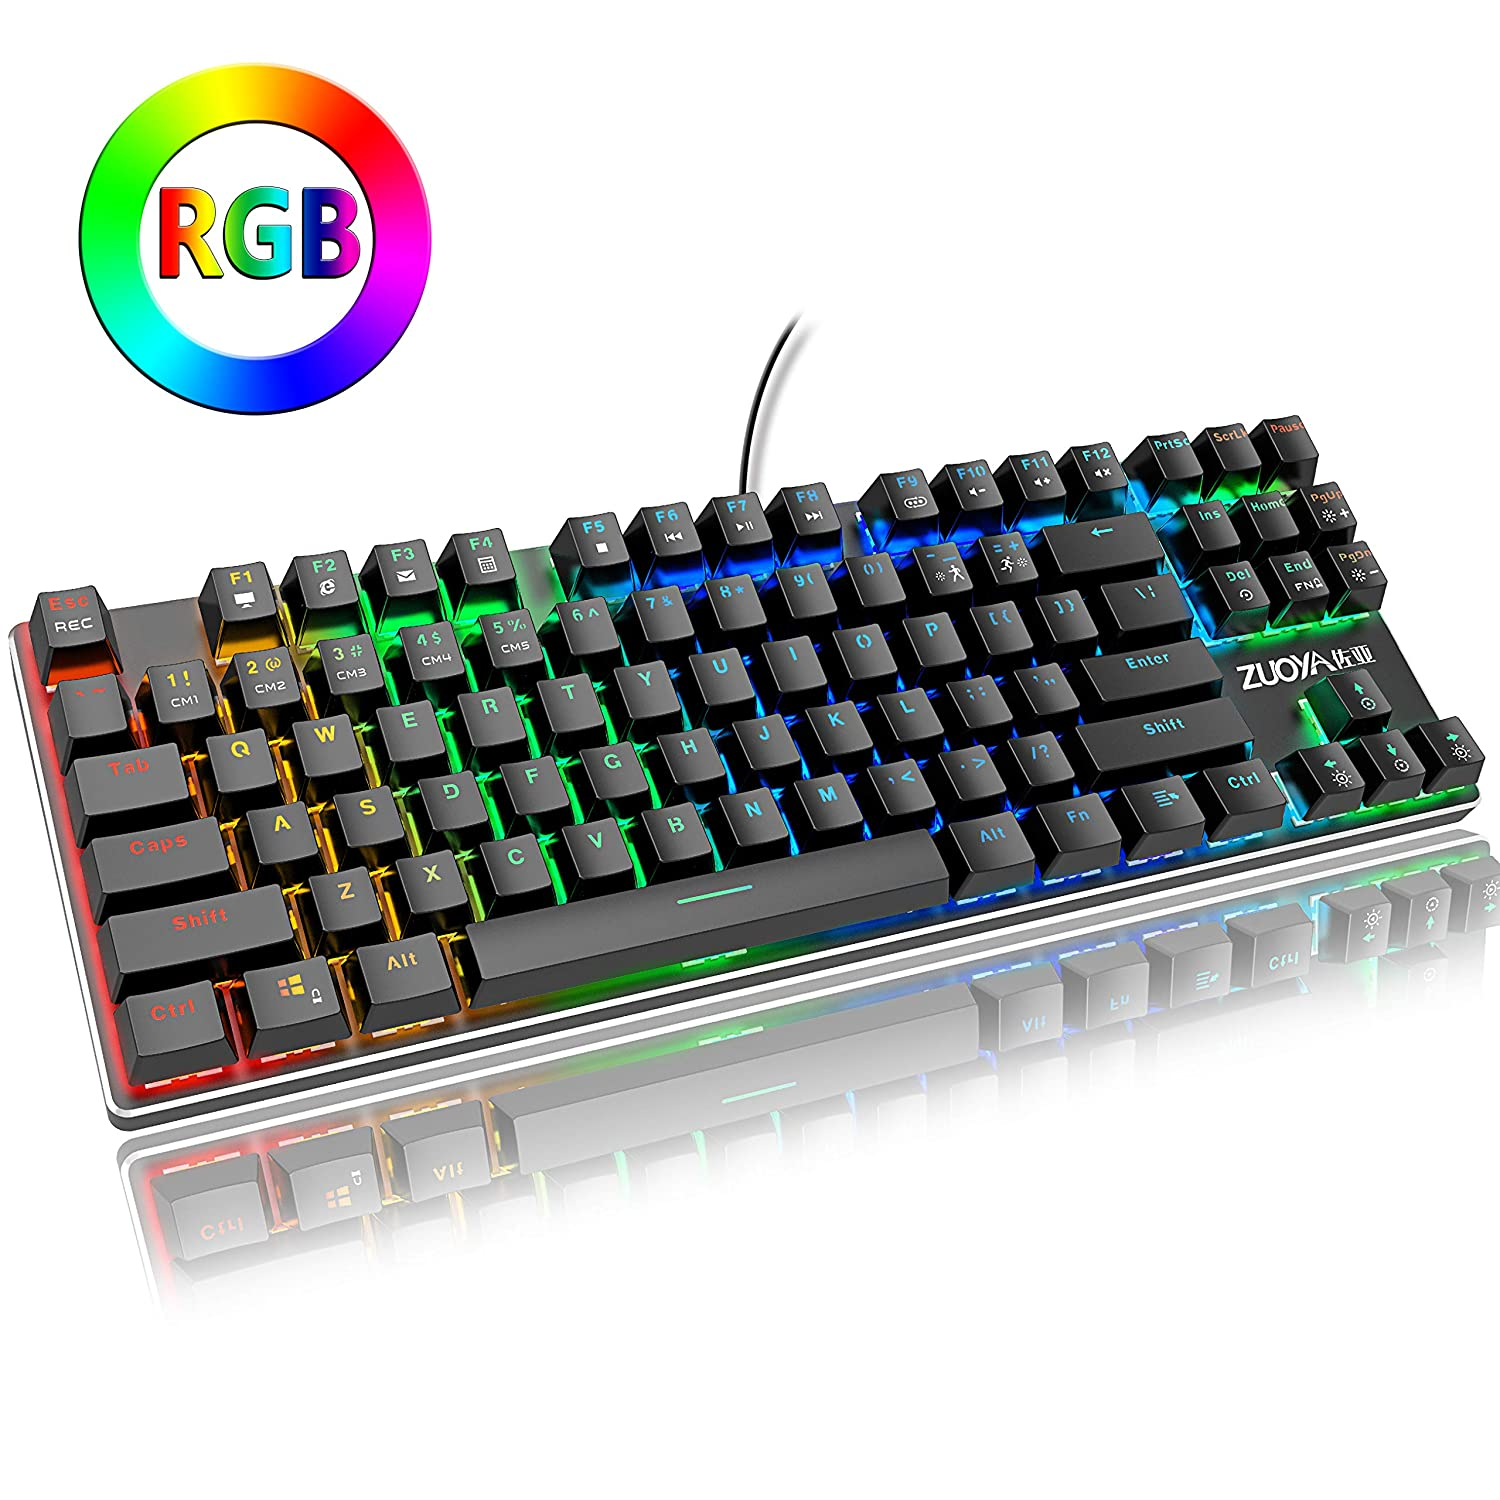 ZUOYA RGB Mechanical Gaming Keyboard Small Compact 87 Keys Anti-ghosting RGB LED Backlit Keyboard with Blue Switch Wired USB for Windows PC Laptop Computer Game RGB Backlight Blue Switch